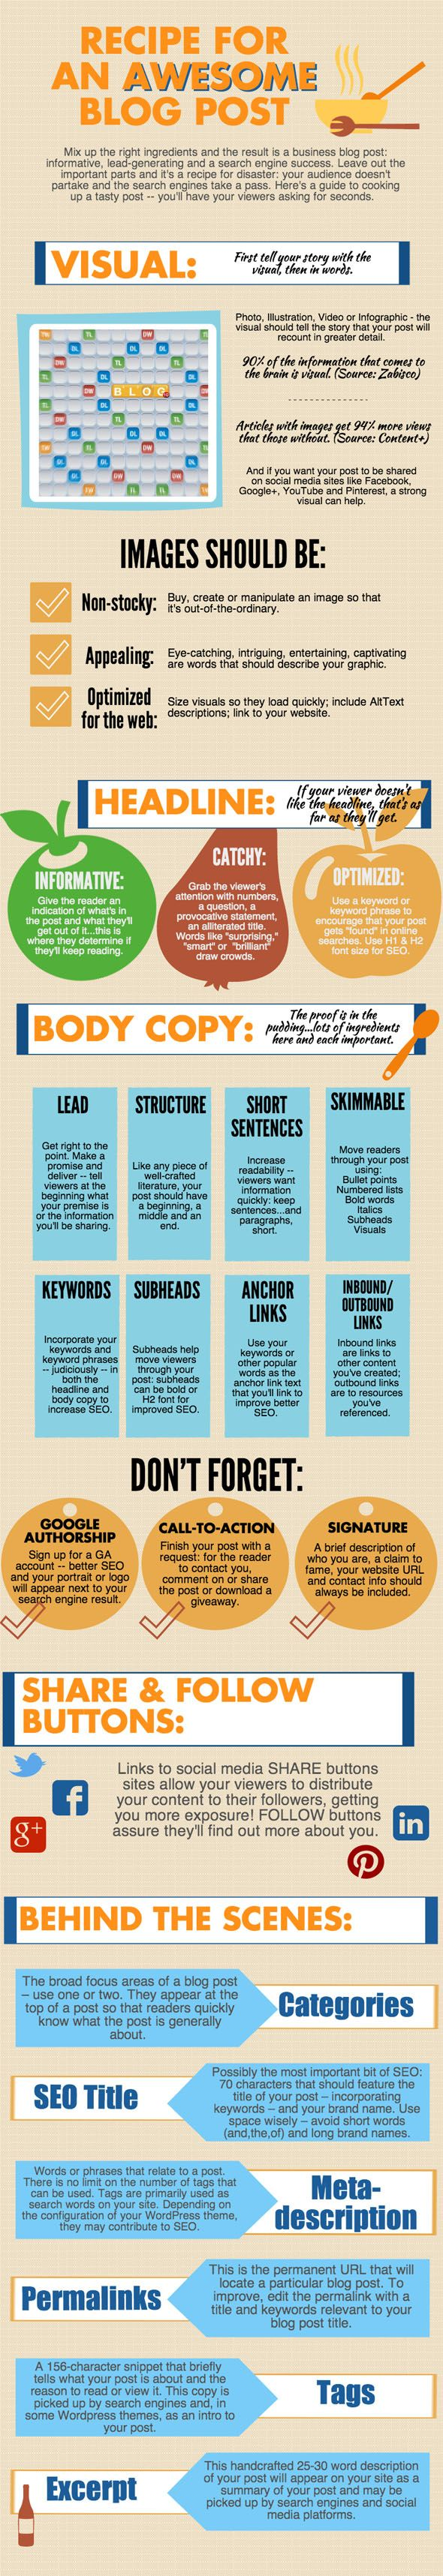 Recipe for an Awesome #Blog Post. #infographic